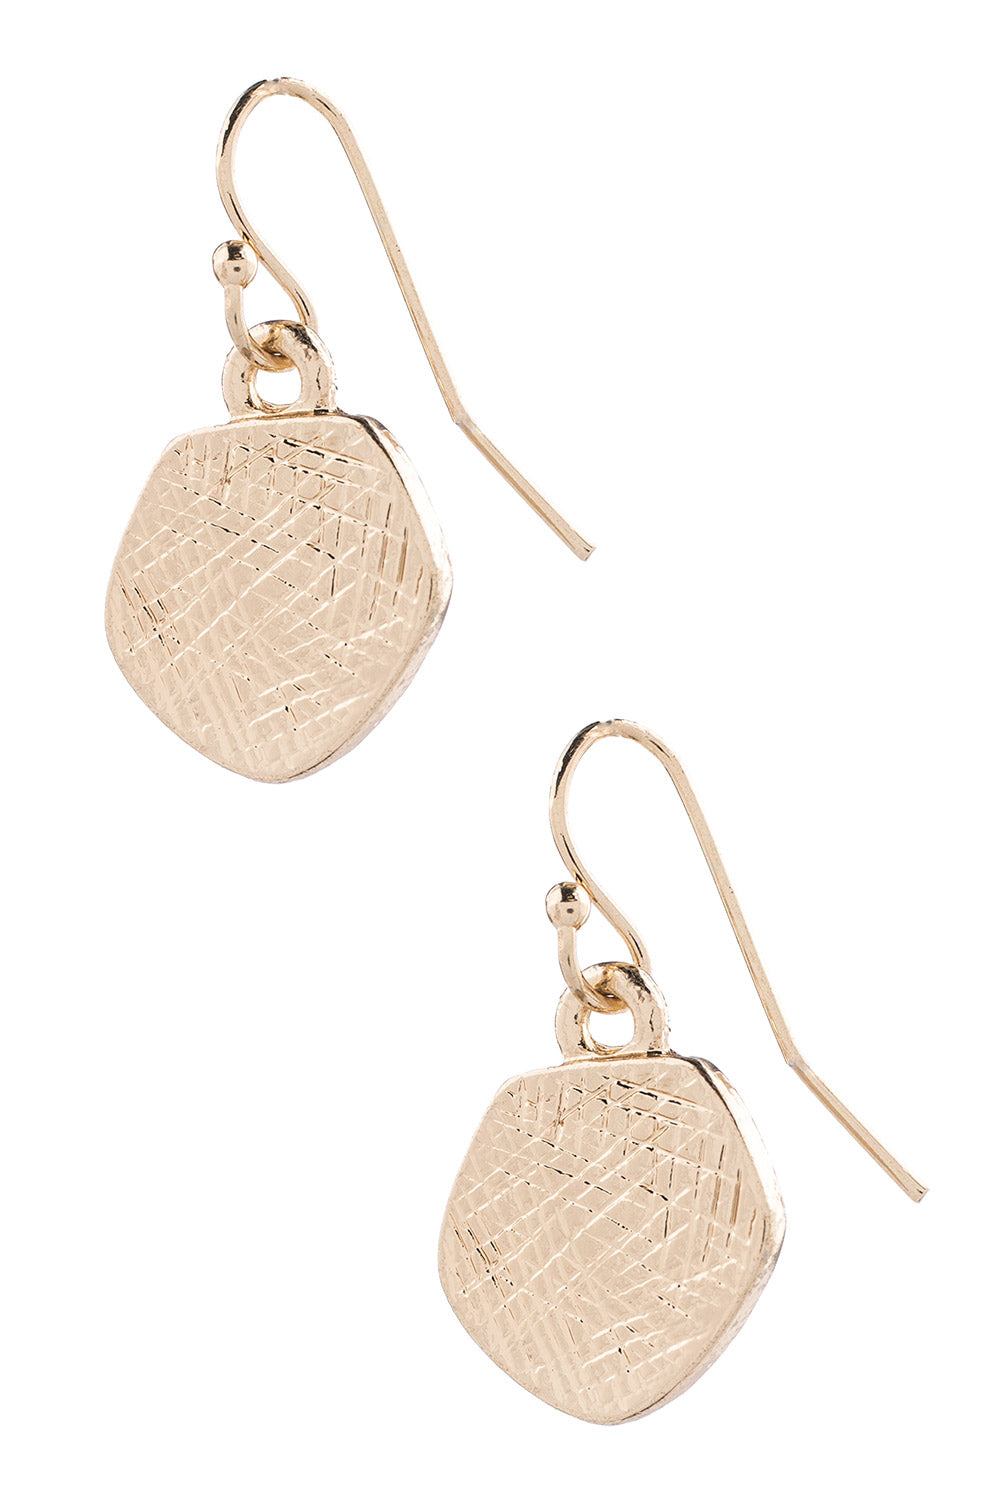 Type 1 Puddle Hop Earrings